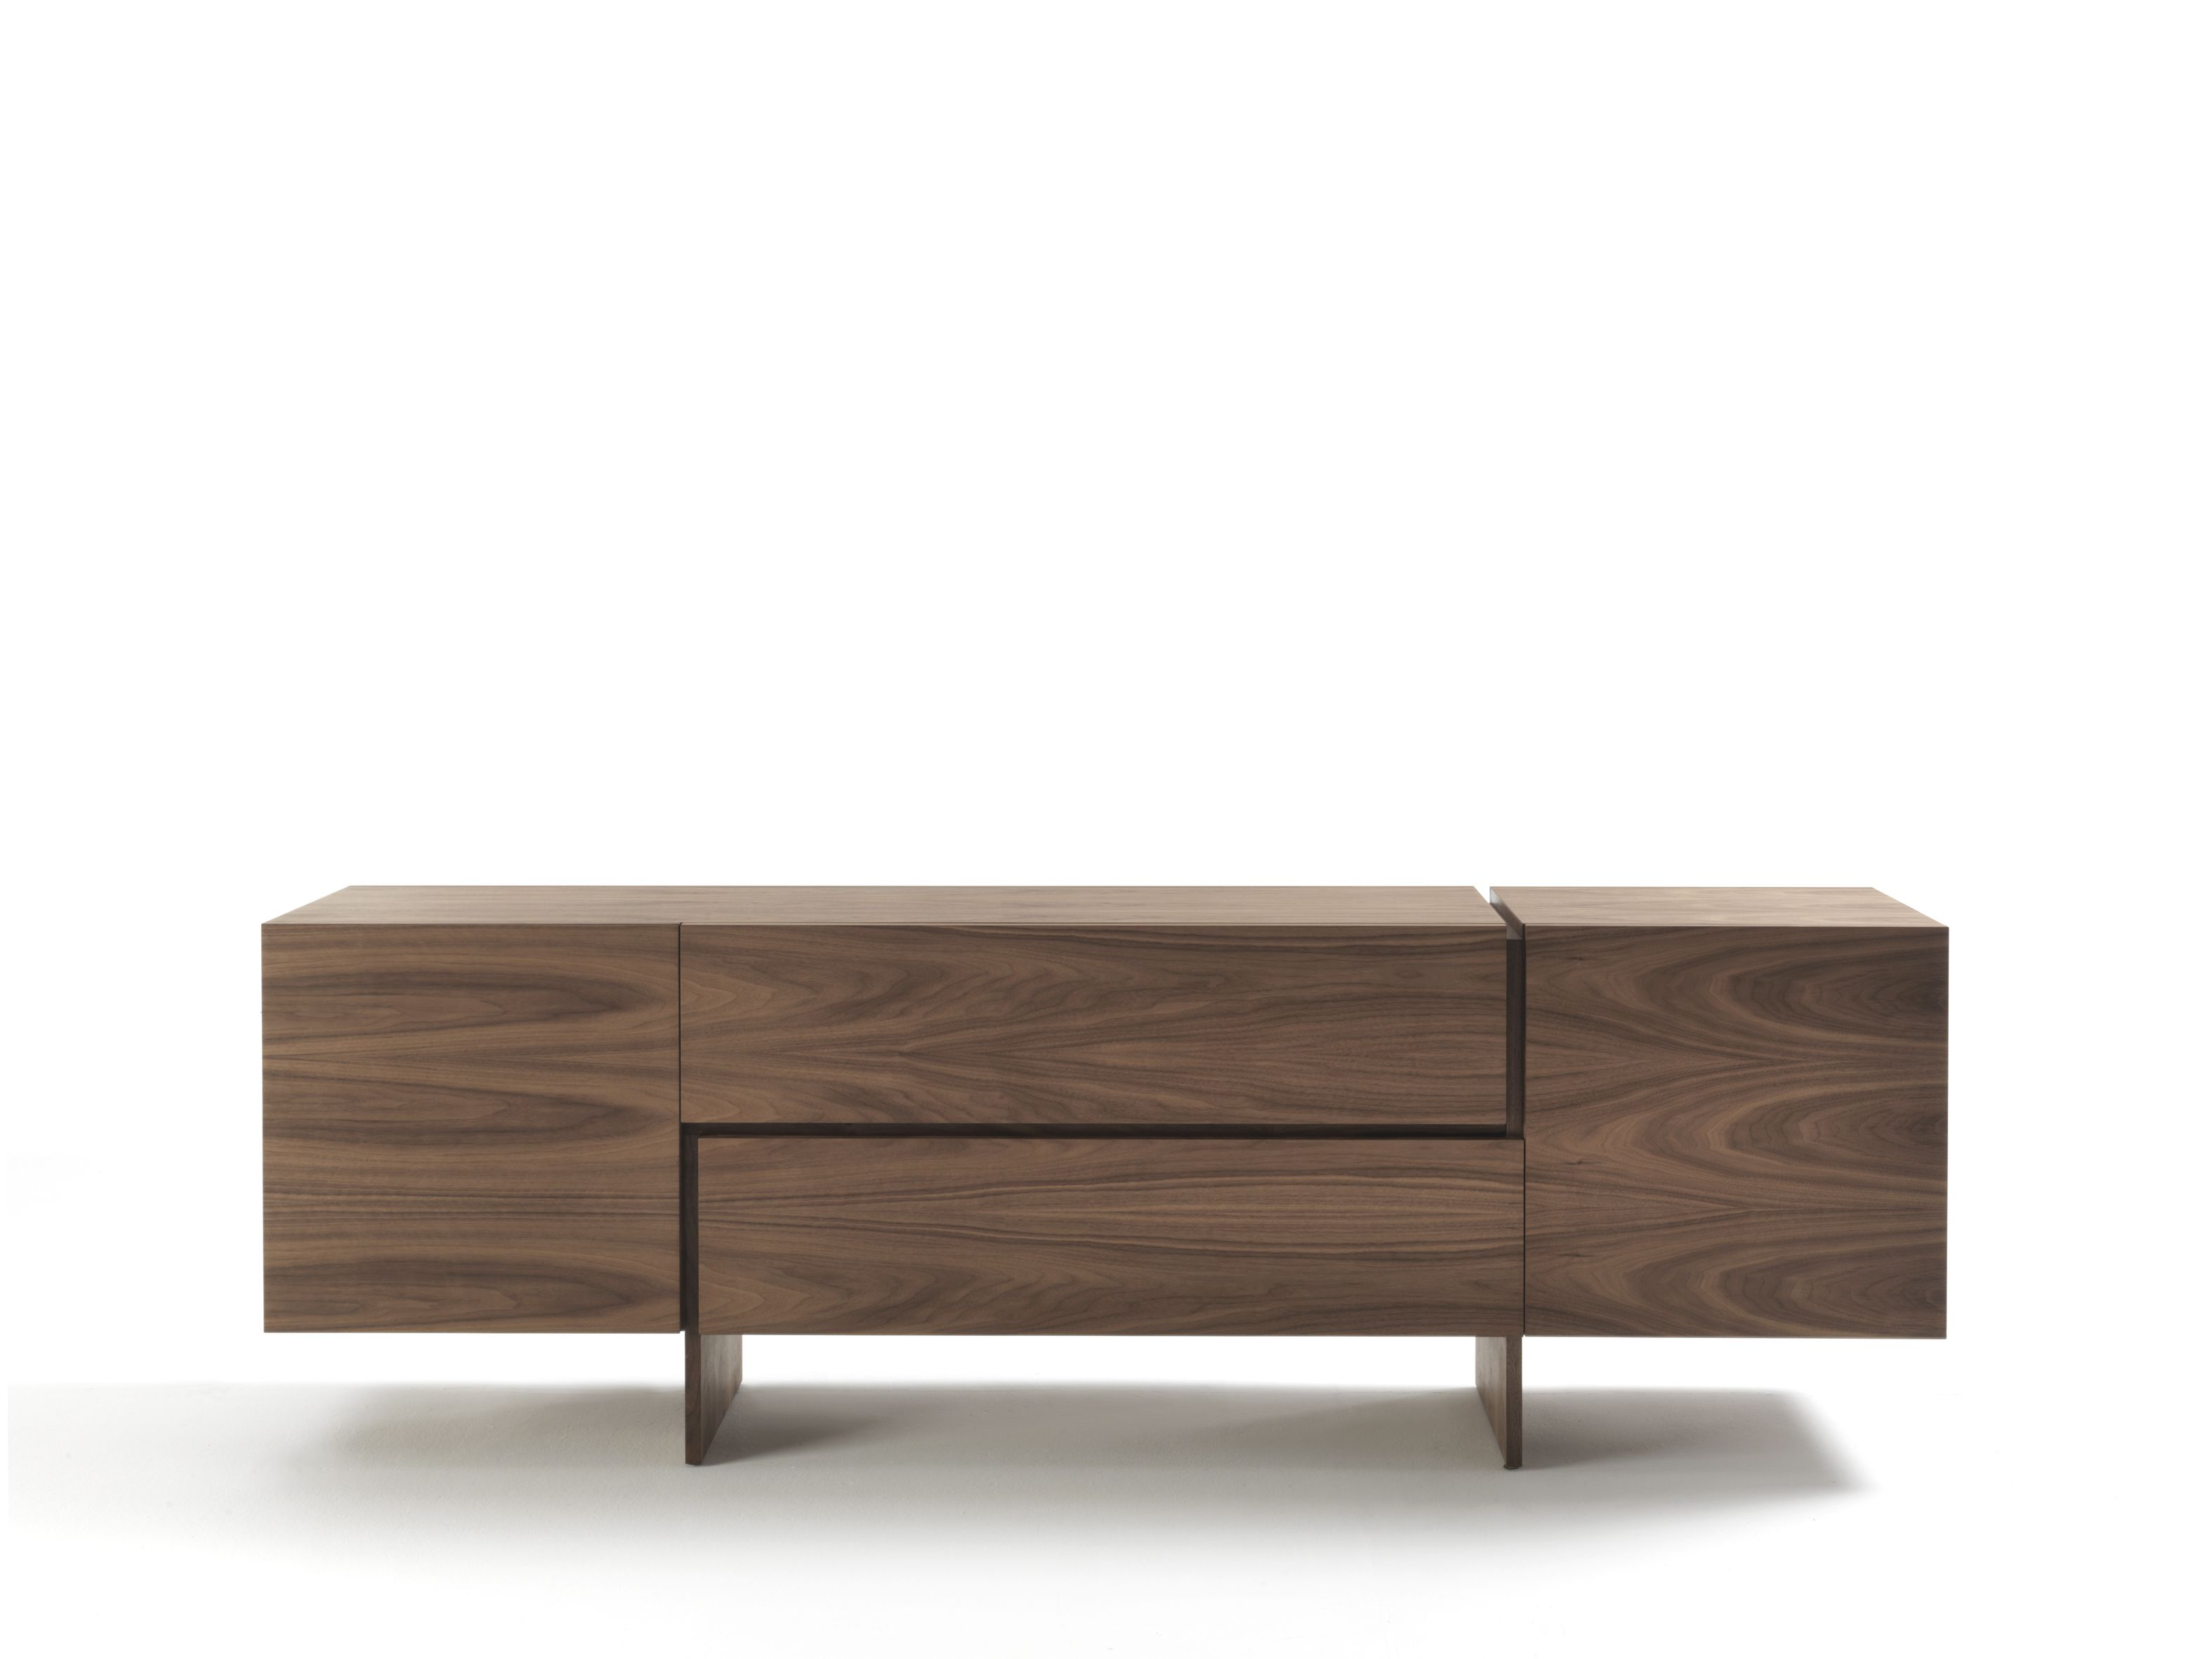 Solid wood sideboard with drawers AKI by Riva 1920 design